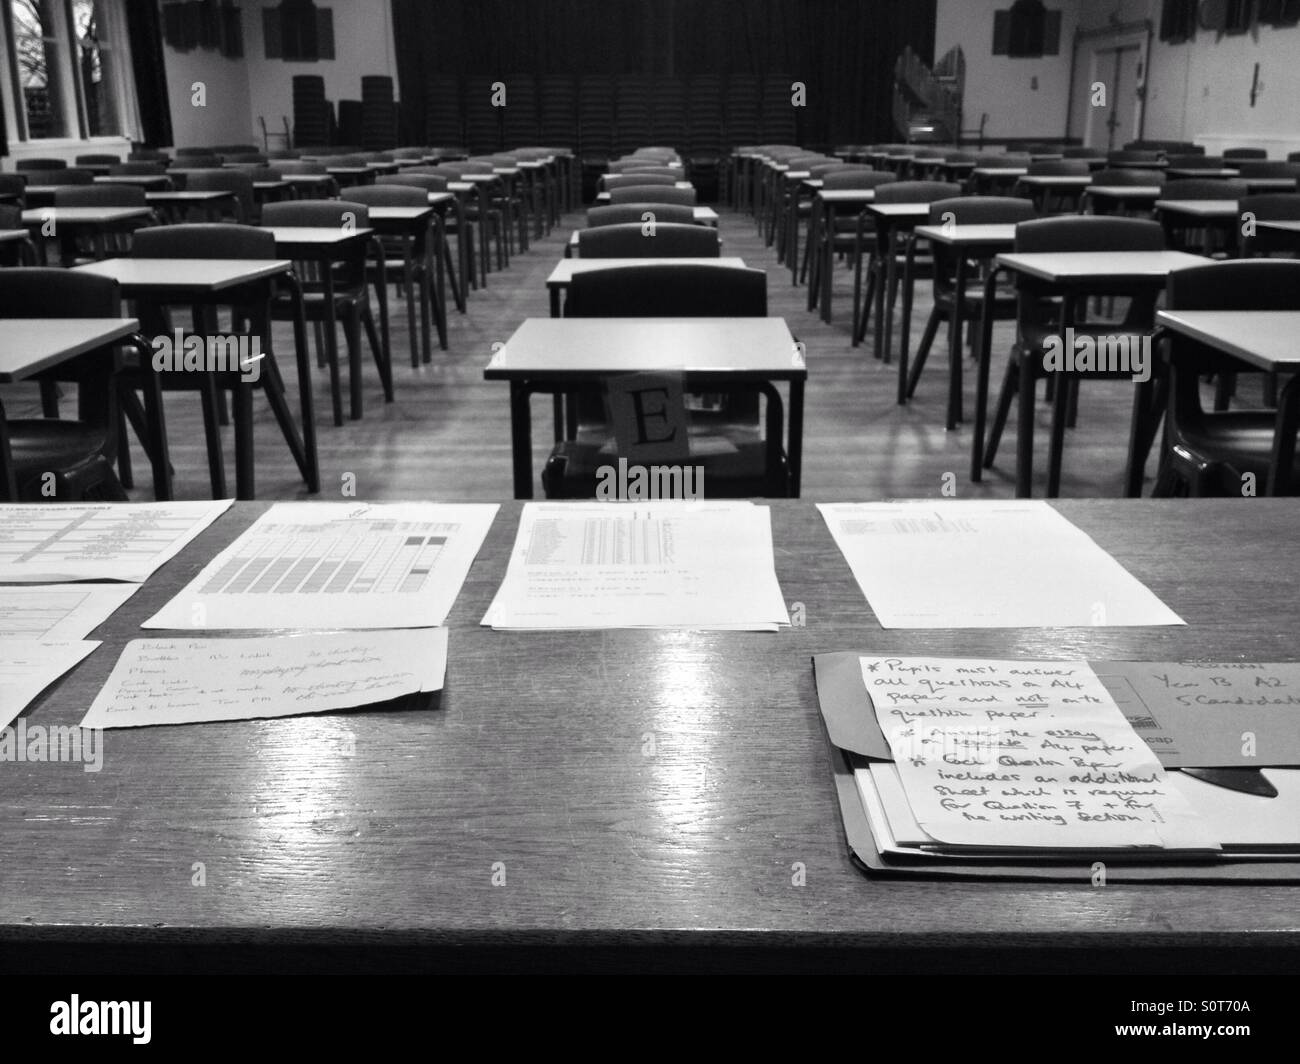 Exam hall laid out for exams stock photo alamy